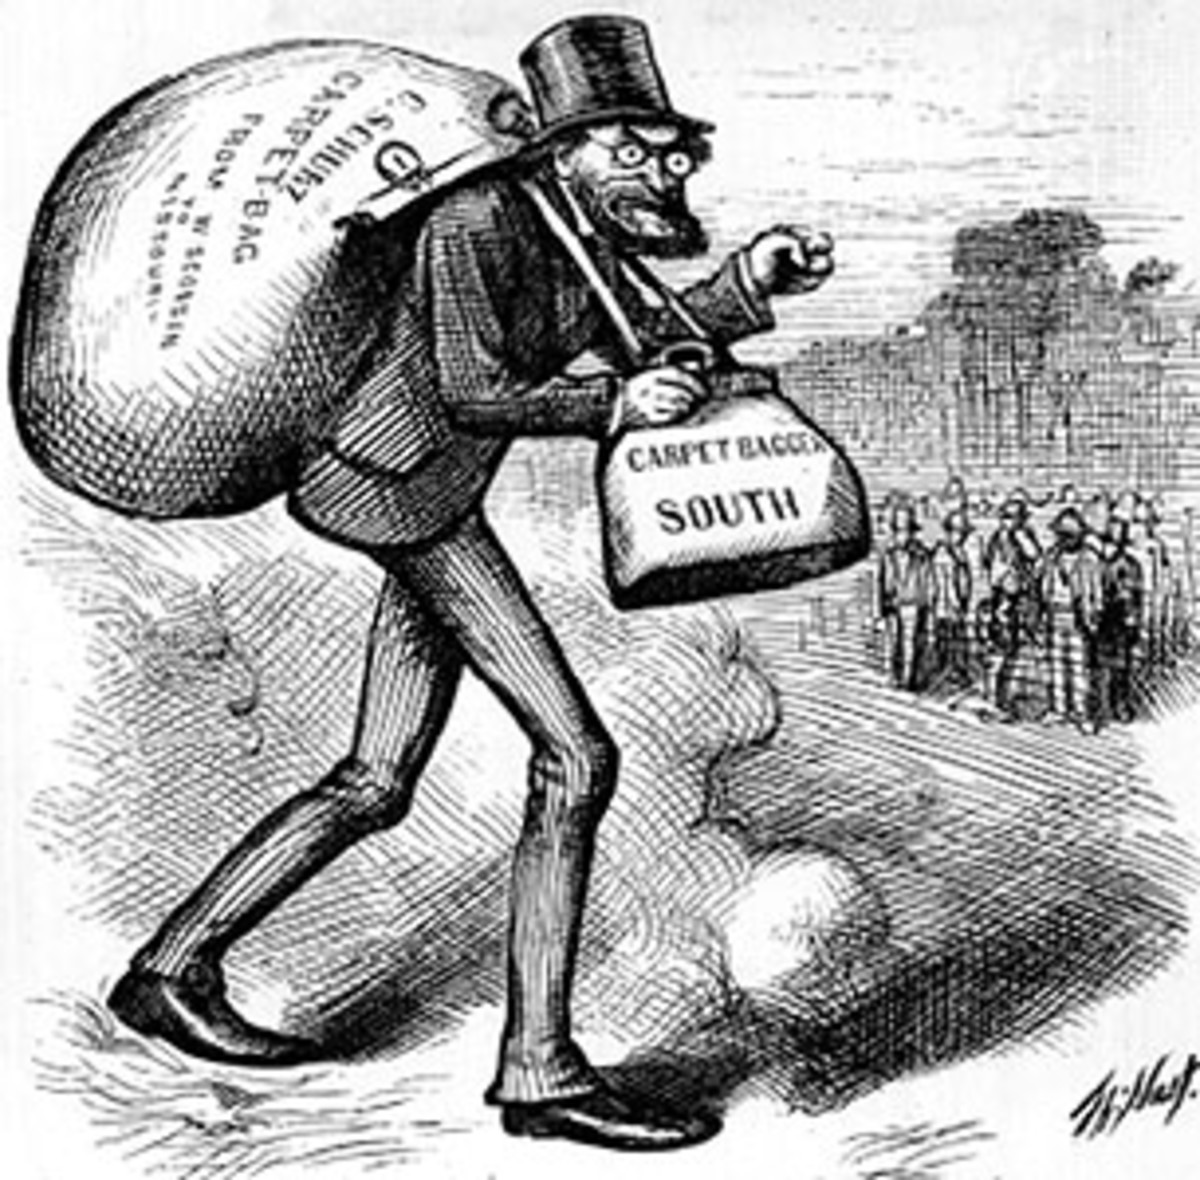 carpetbaggers-and-the-souths-economy